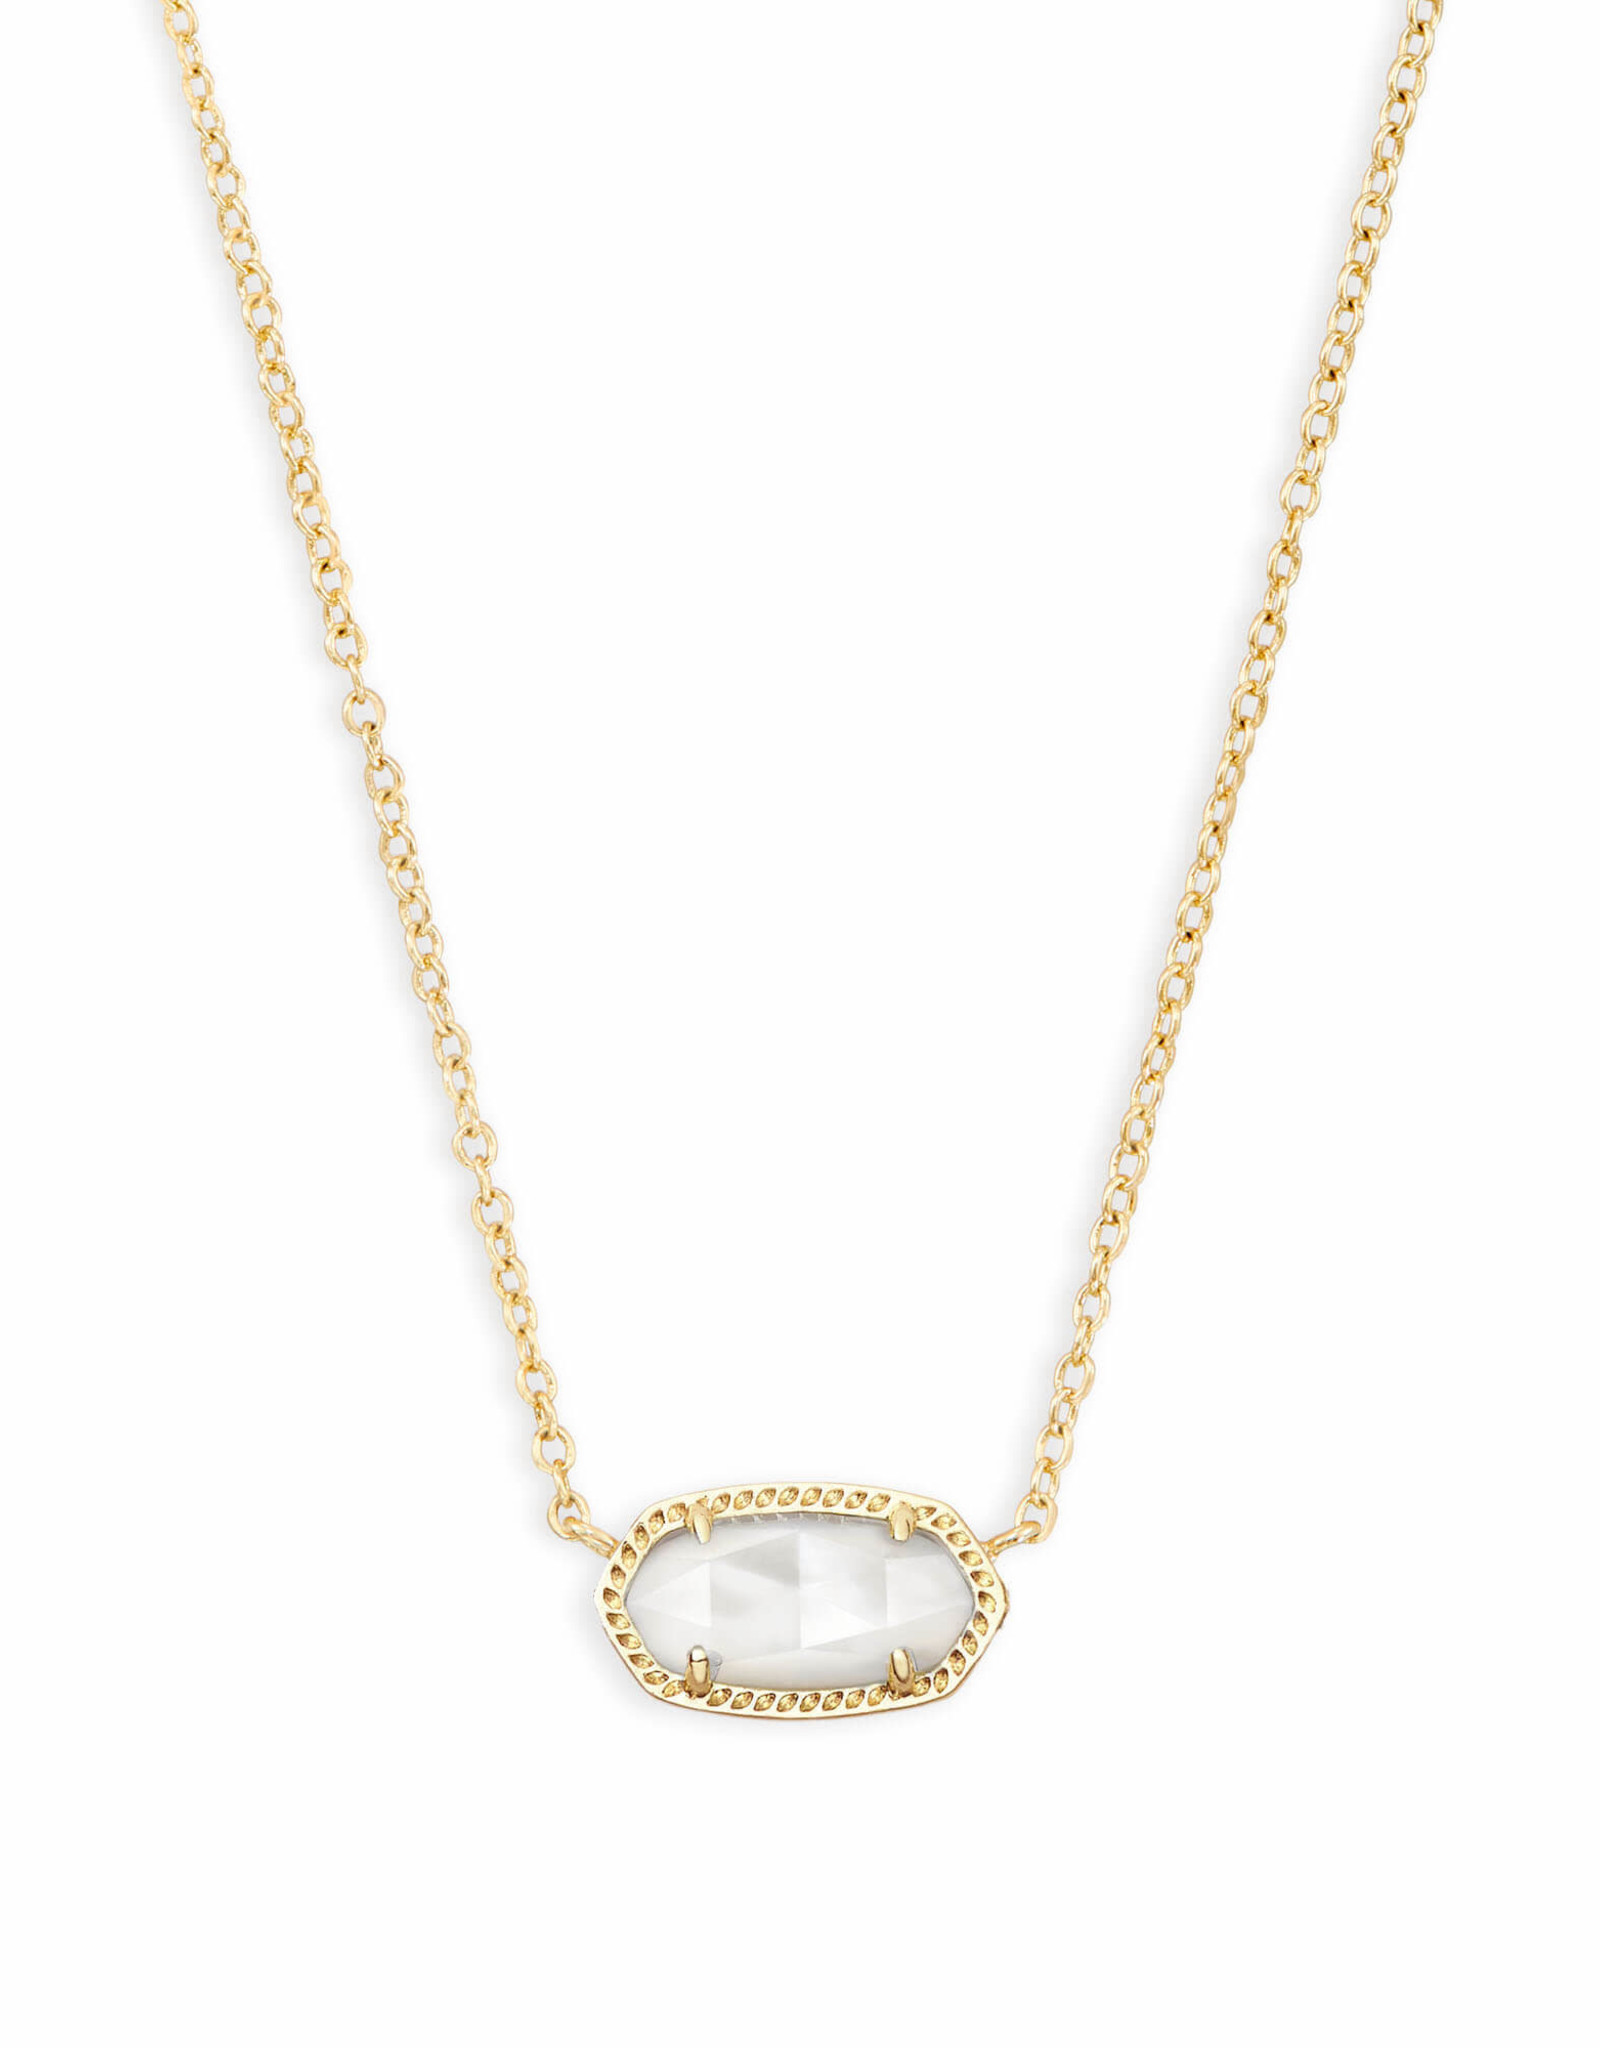 Kendra Scott Elisa Necklace - Ivory MOP/Gold